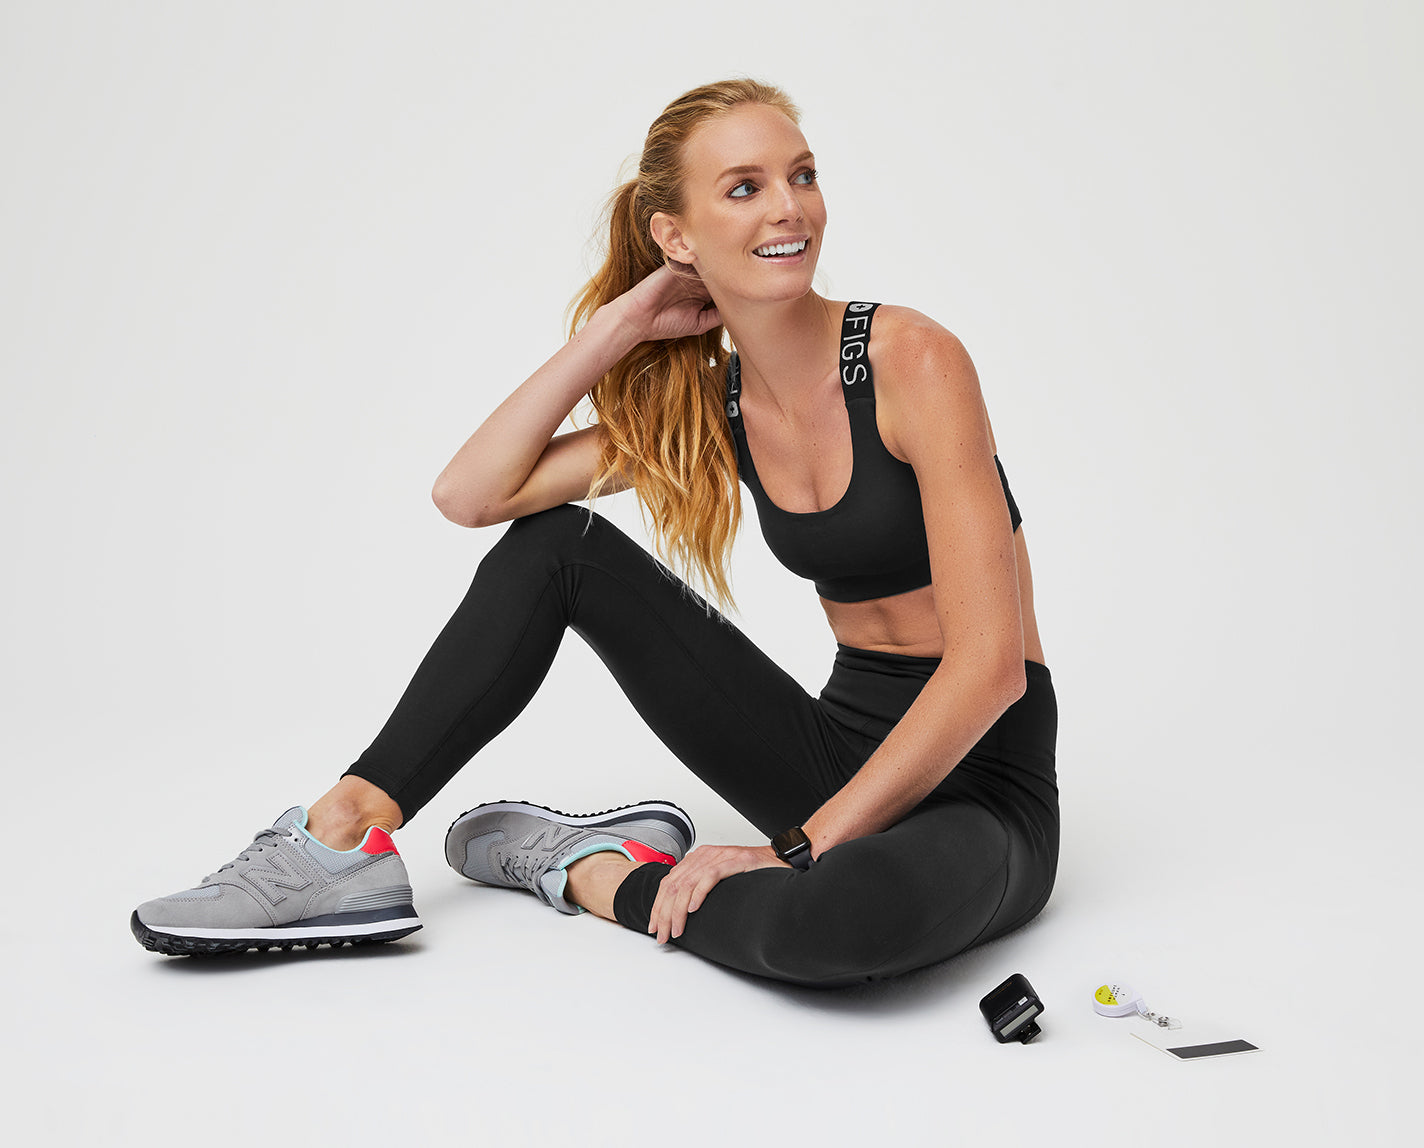 Peak performance to get you from yoga to running errands to a full shift. The 300 Performance Bra is designed with perforated detail for airflow, plus FIGS elastic straps and features our proprietary FIONdry fabric with moisture wicking technology.